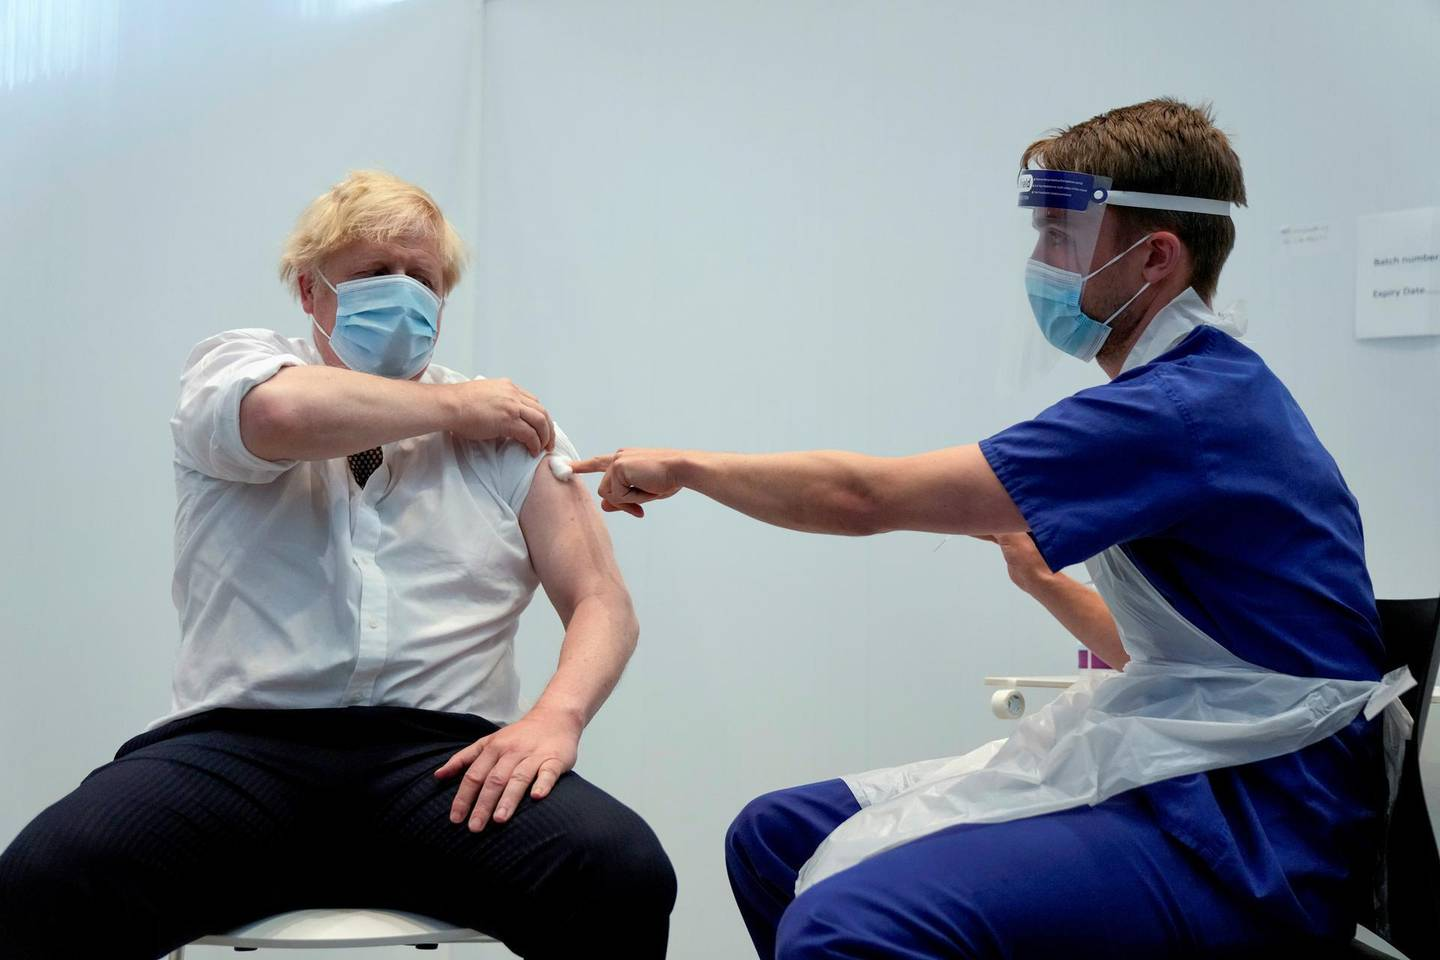 Britain's Prime Minister Boris Johnson holds up his sleeve after receiving his second dose of the AstraZeneca coronavirus disease (COVID-19) vaccine from James Black, at the Francis Crick Institute in London, Britain June 3, 2021. Matt Dunham/Pool via REUTERS